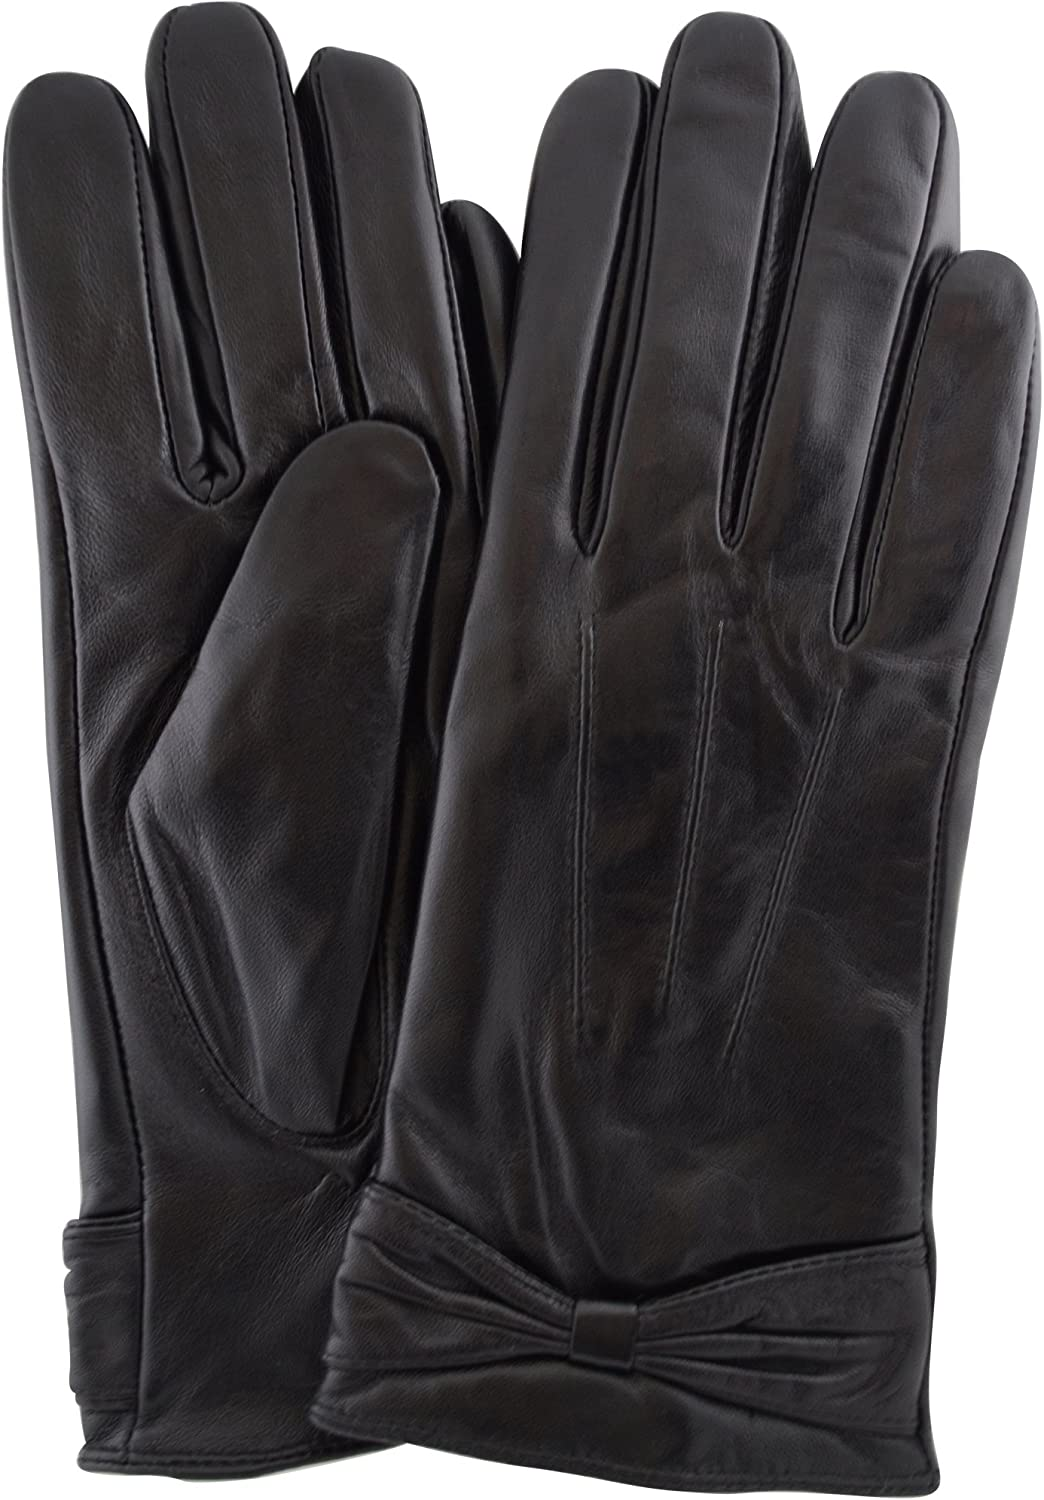 Ladies Butter Soft Preminum Leather Glove with bow & 3 Point Stitch design - Black - X-Large (8